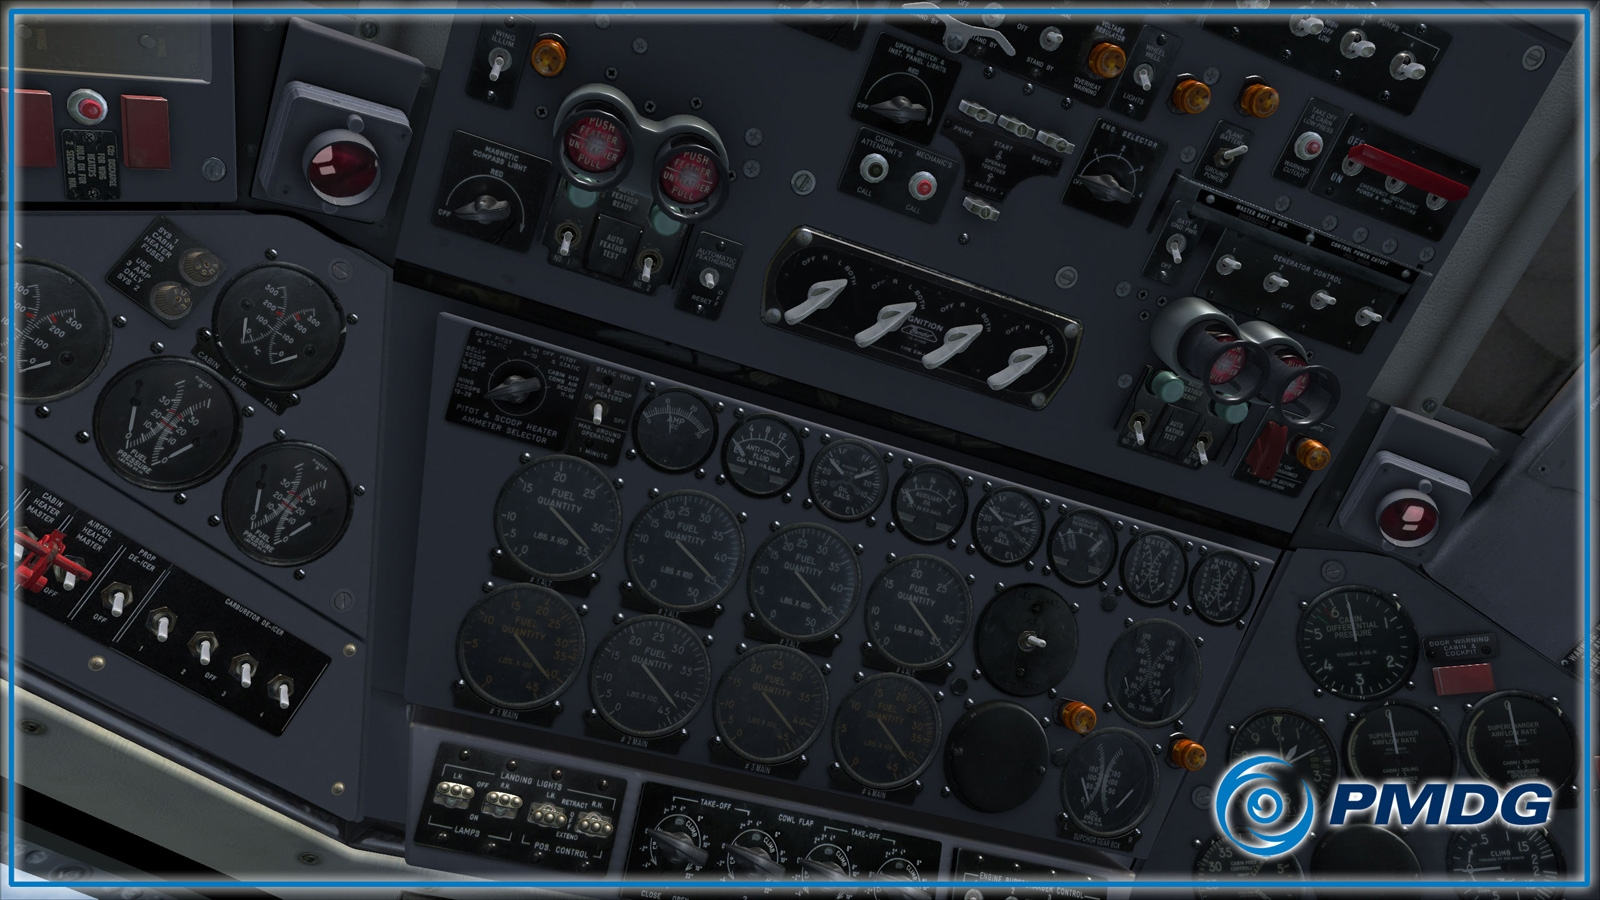 PMDG_DC6_Virtual_Cockpit_02.jpg